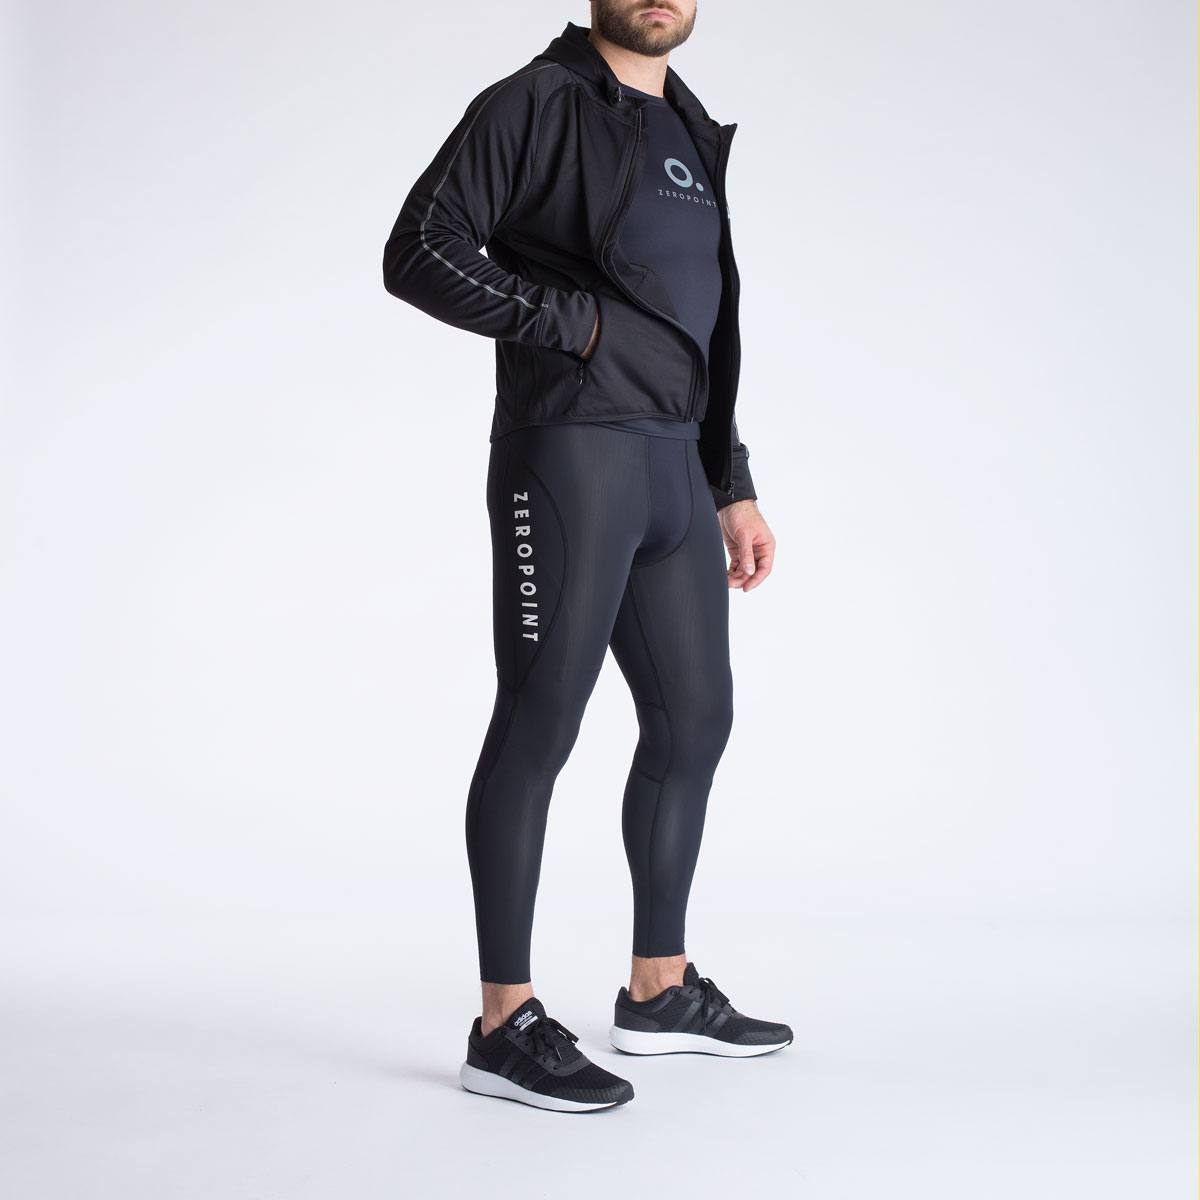 Can Compression Wear Help Athletes | ZeroPoint Compression Inc